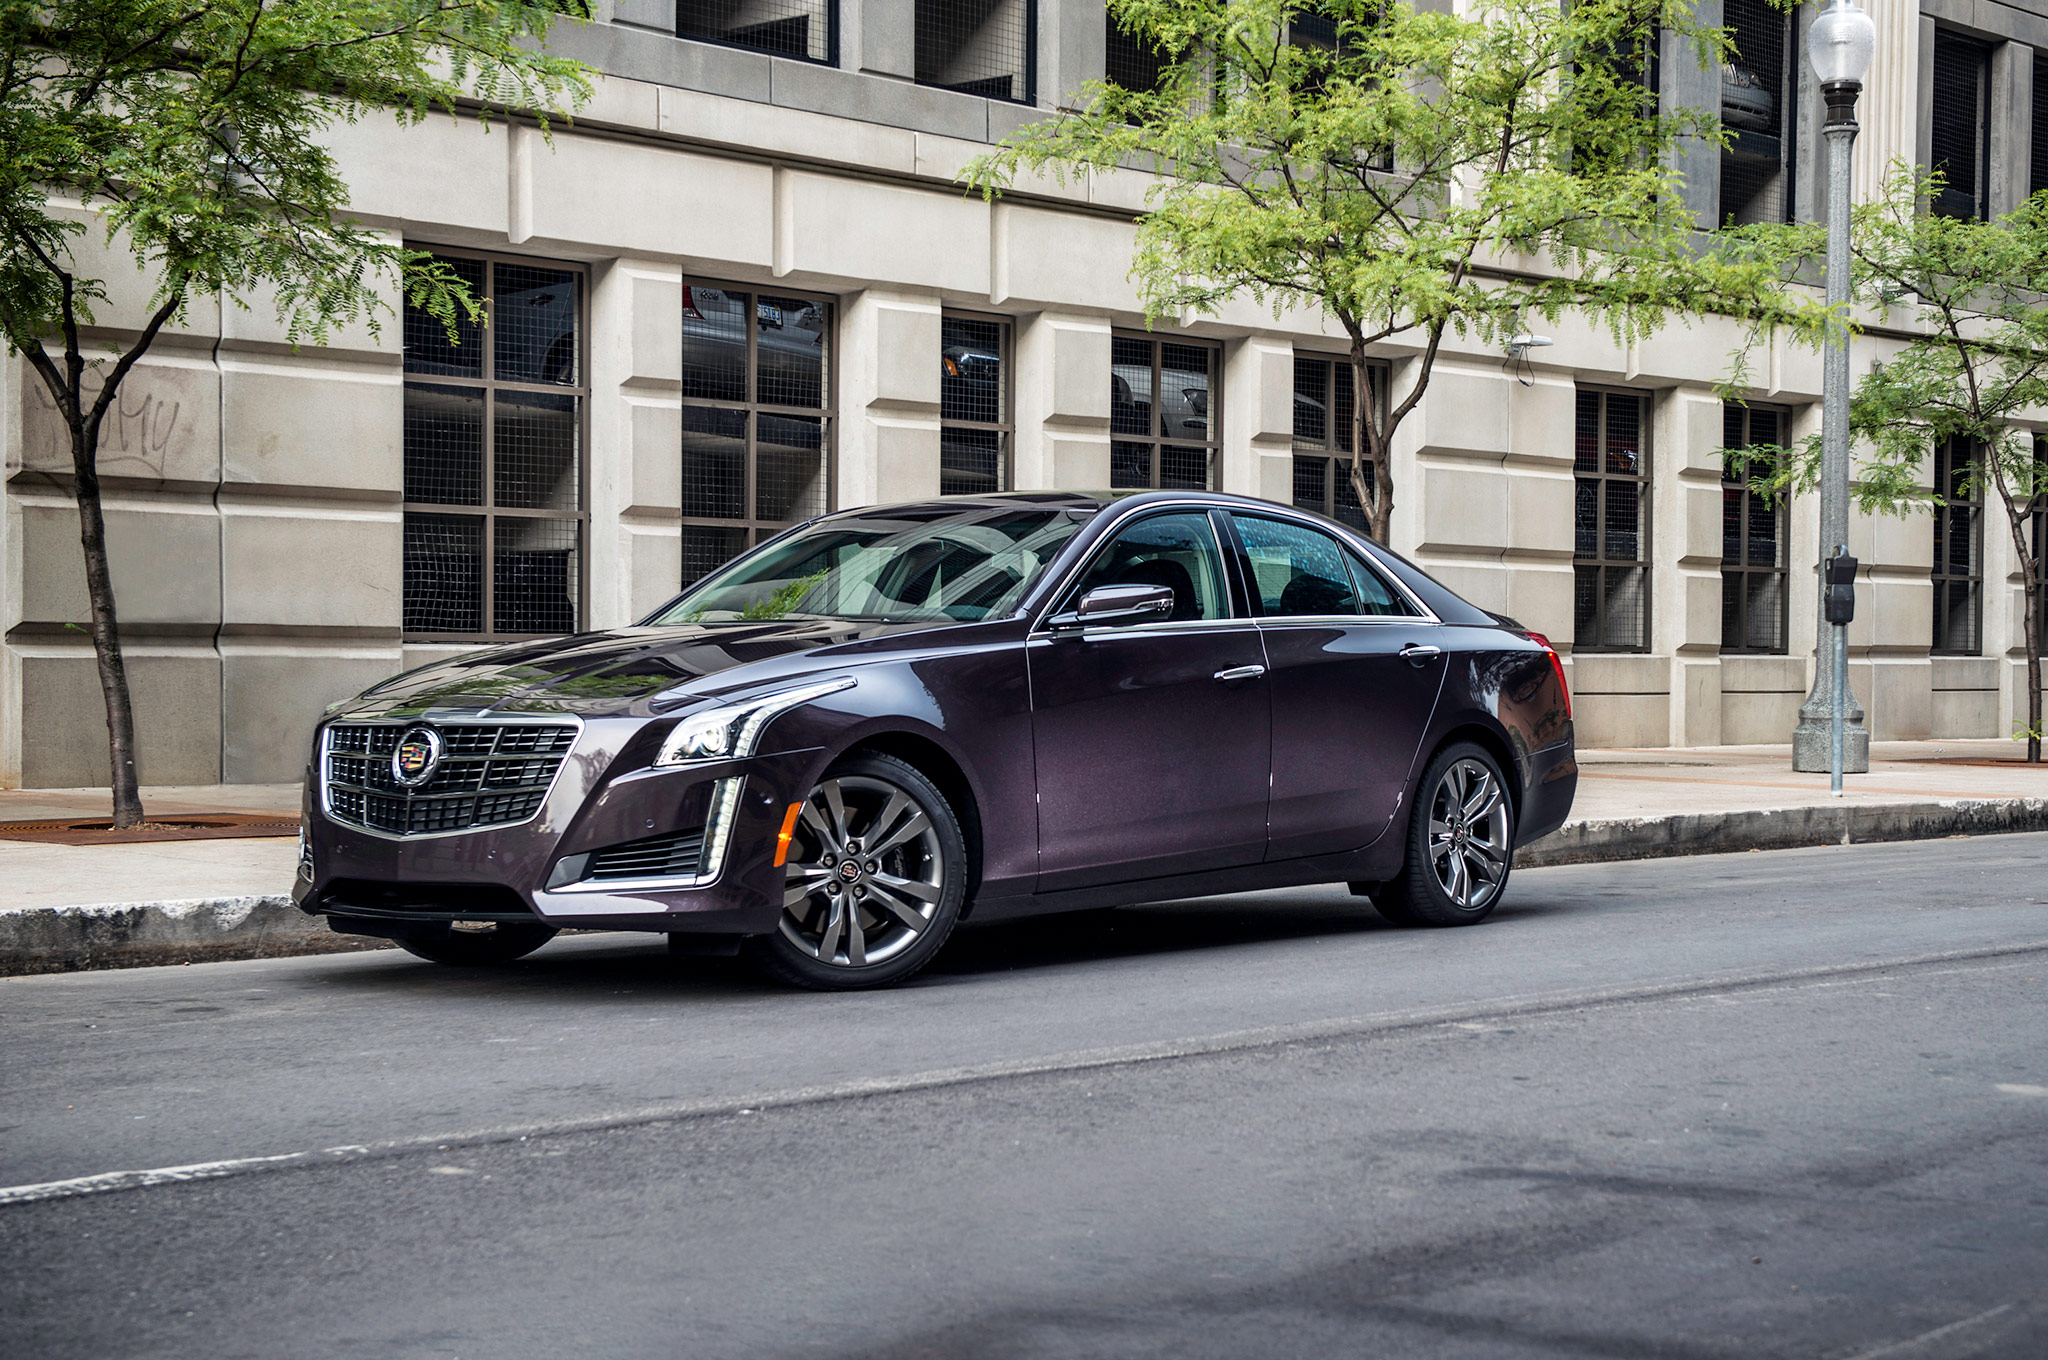 2014 Cadillac CTS Vsport Four Seasons Introduction